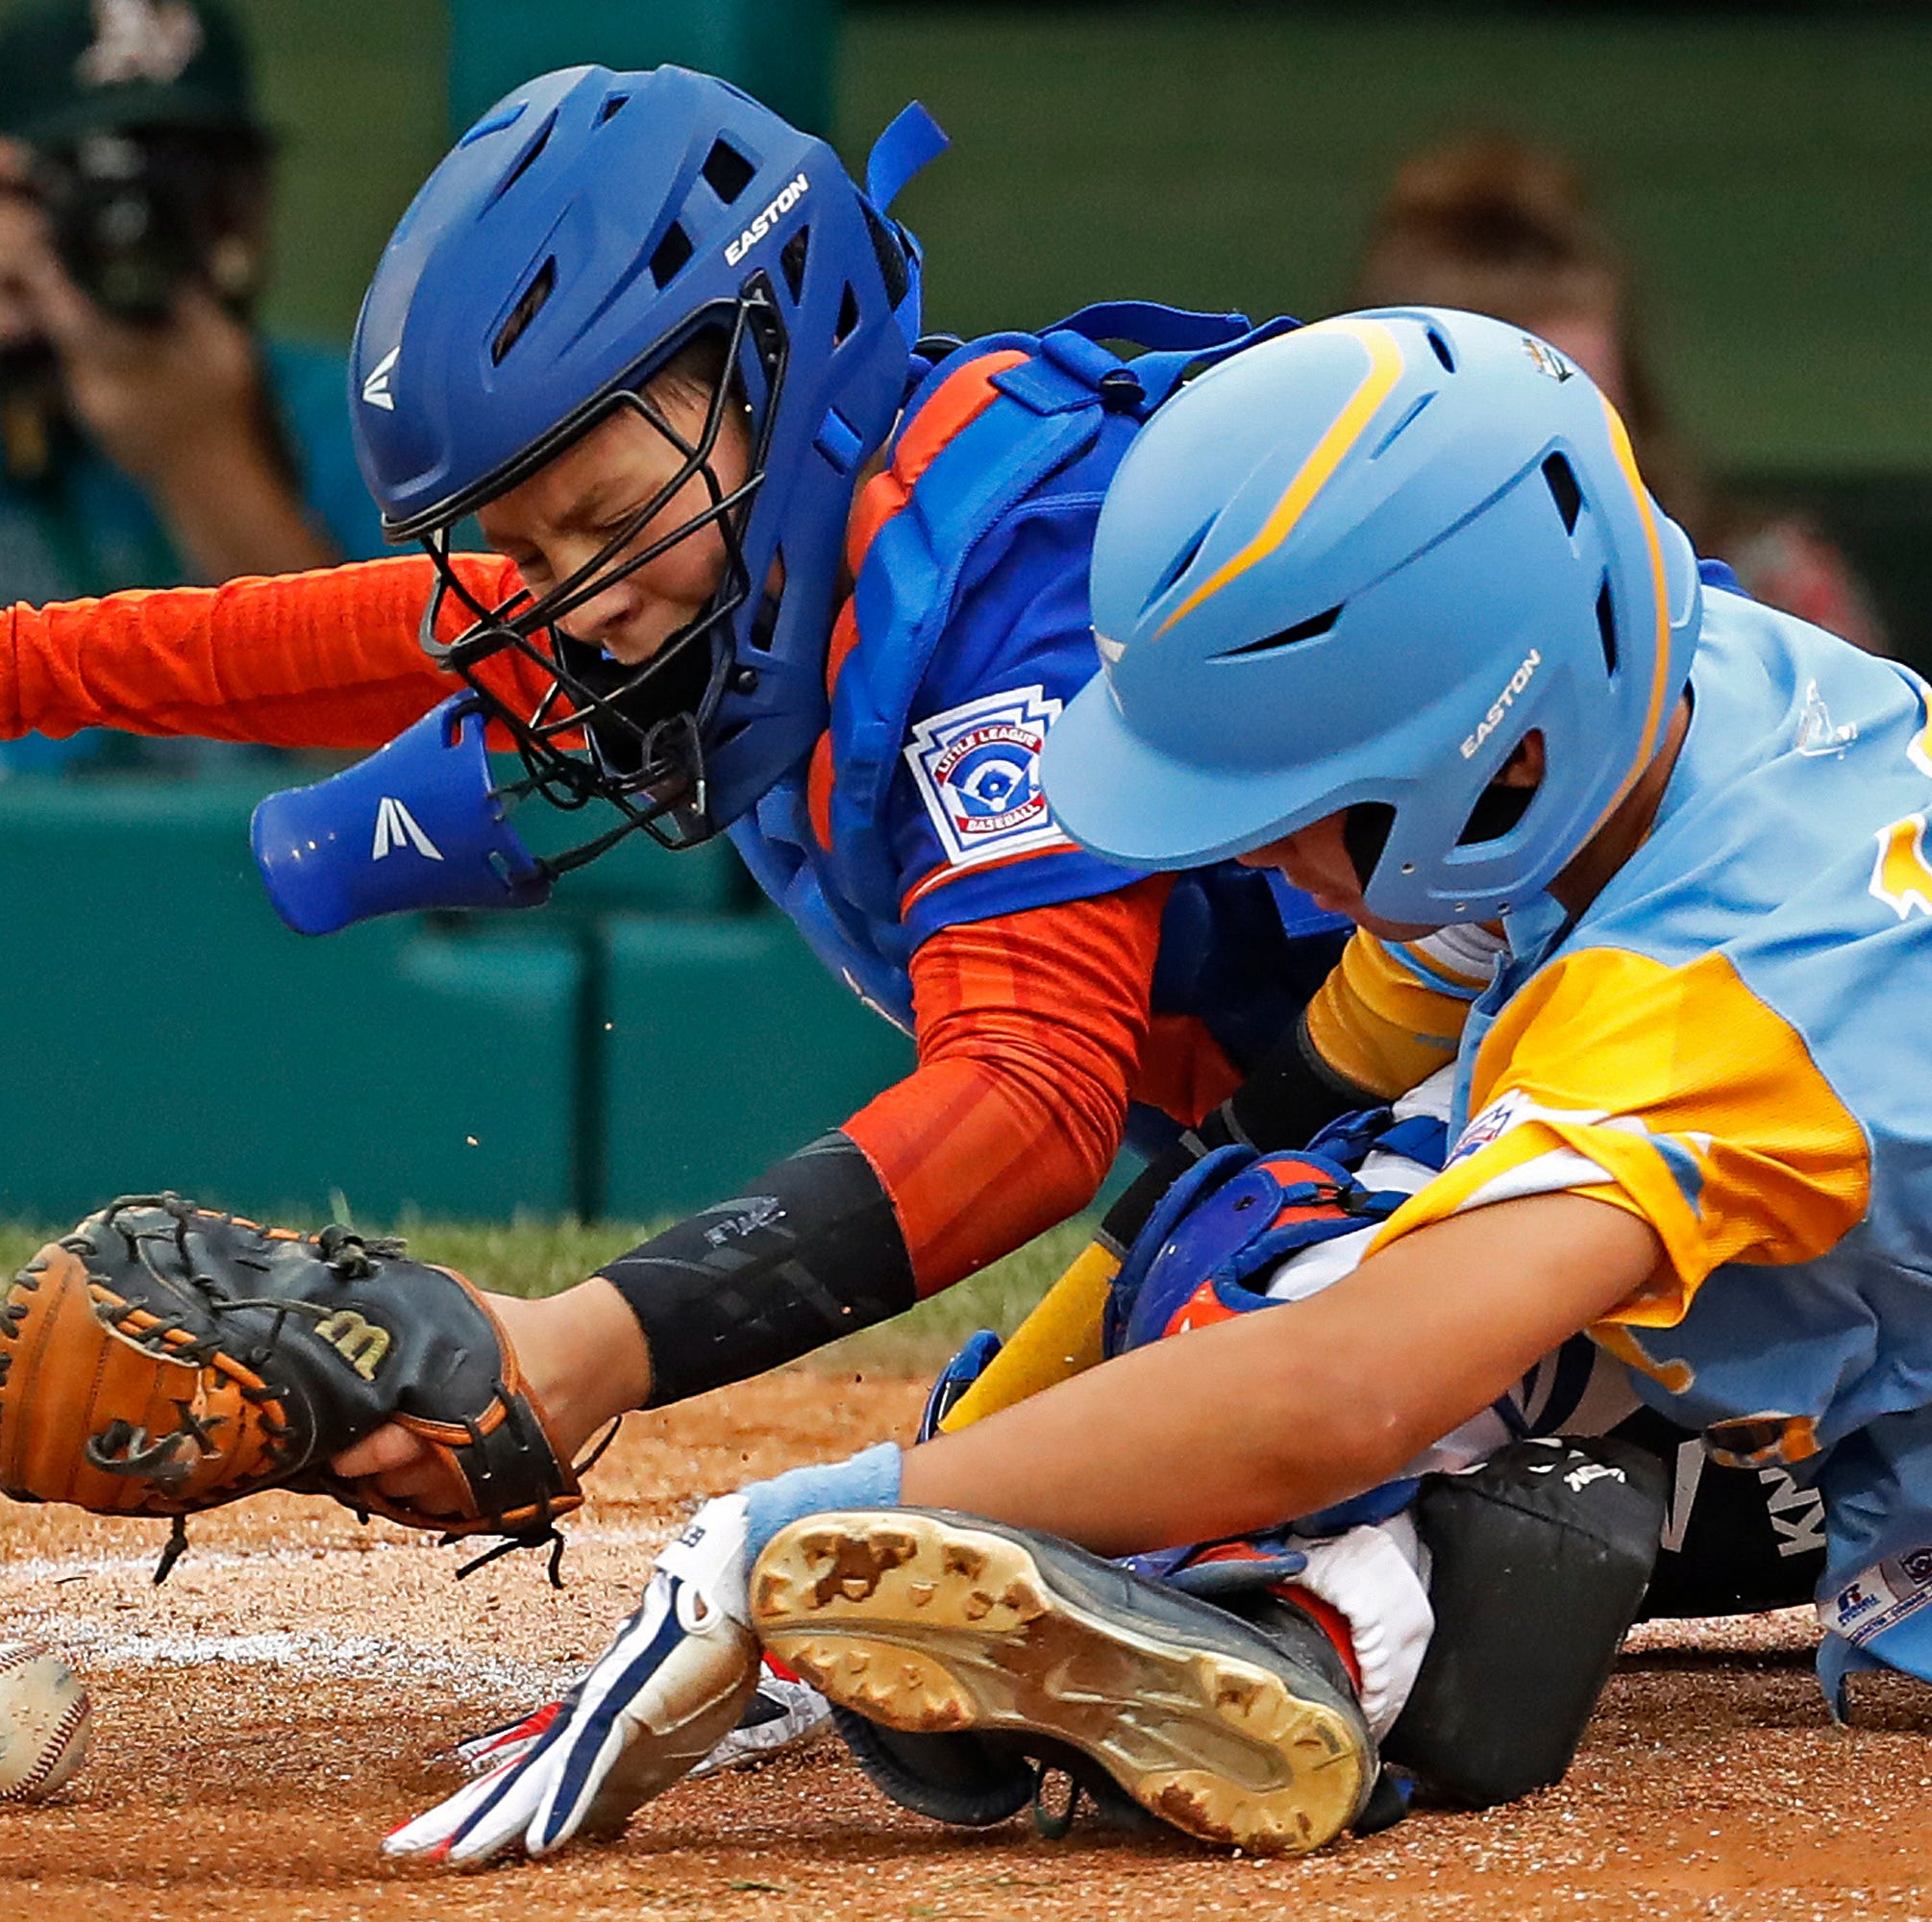 Grosse Pointe Woods-Shores no match for Hawaii in Little League World Series